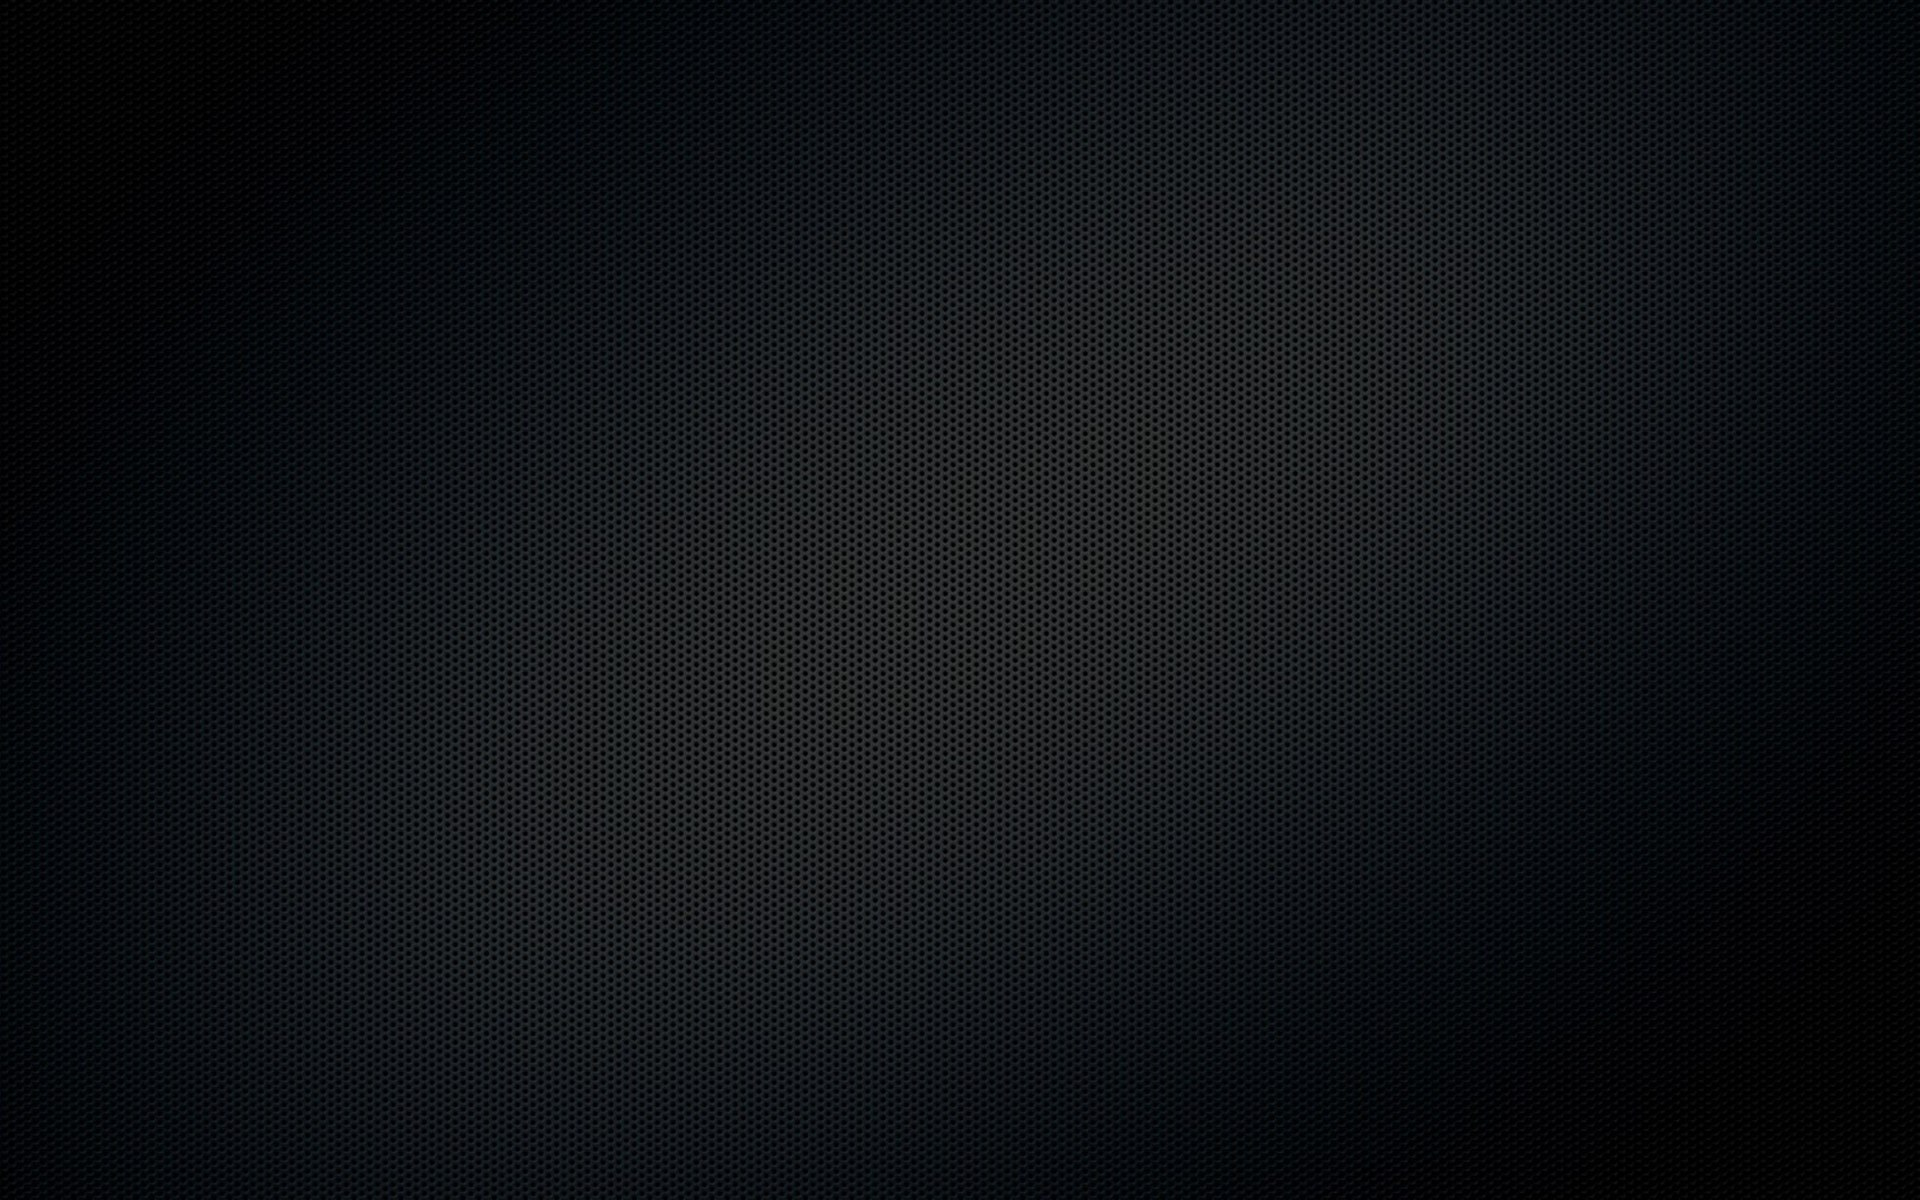 Black Texture Hd Wallpapers 1080p